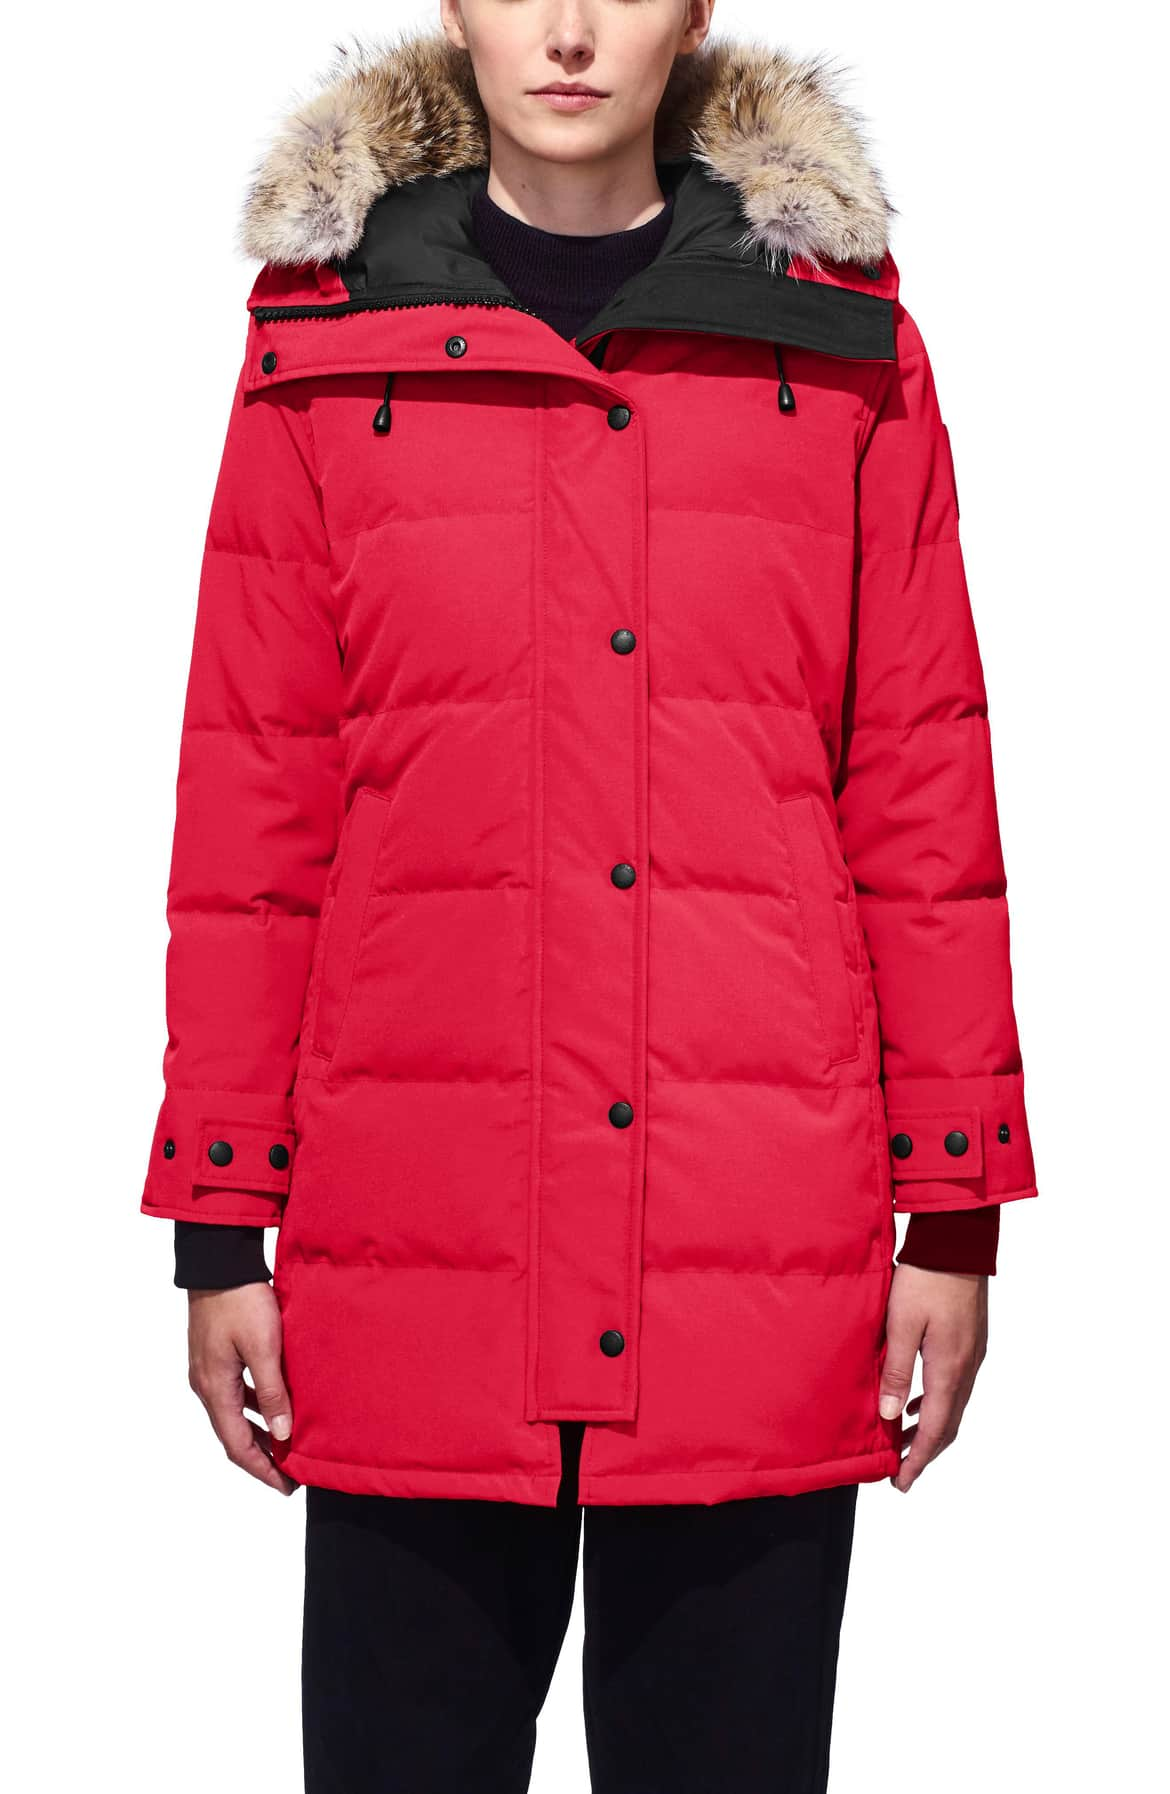 <p>Designed to stand up to frigid temperatures, a rugged parka goes uptown-stylish in a slim, mid-thigh-length silhouette.{&nbsp;}$925.00 (Image: Nordstrom){&nbsp;}</p><p></p>